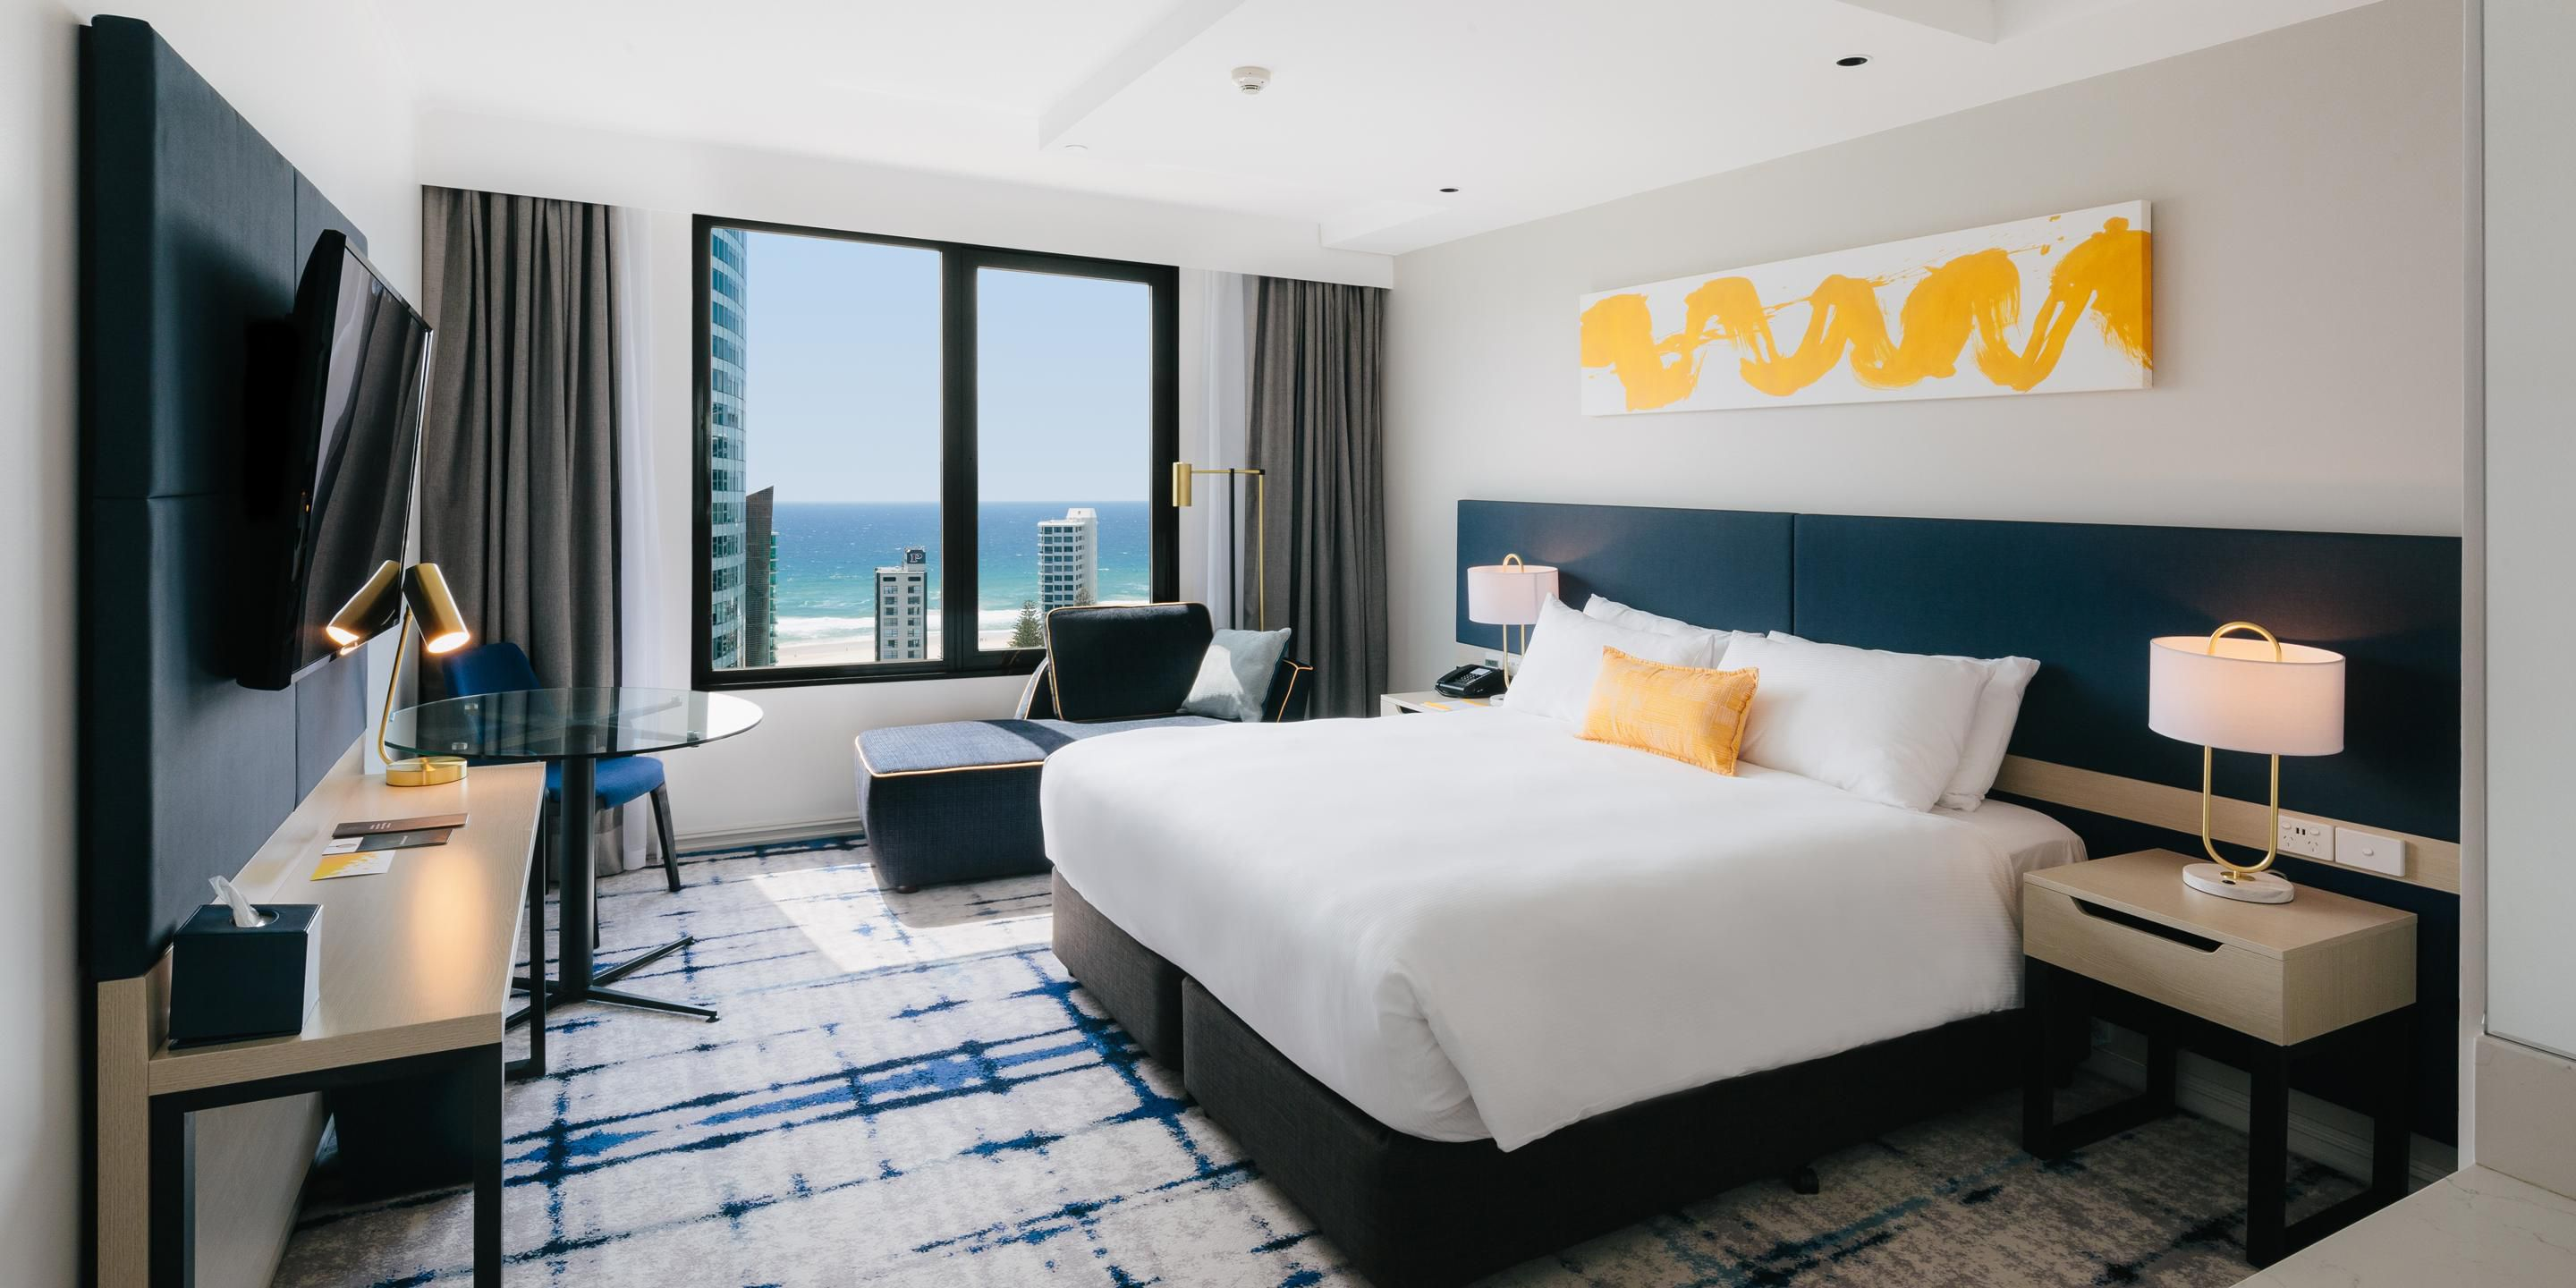 Deluxe room king bed with Pacific ocean views